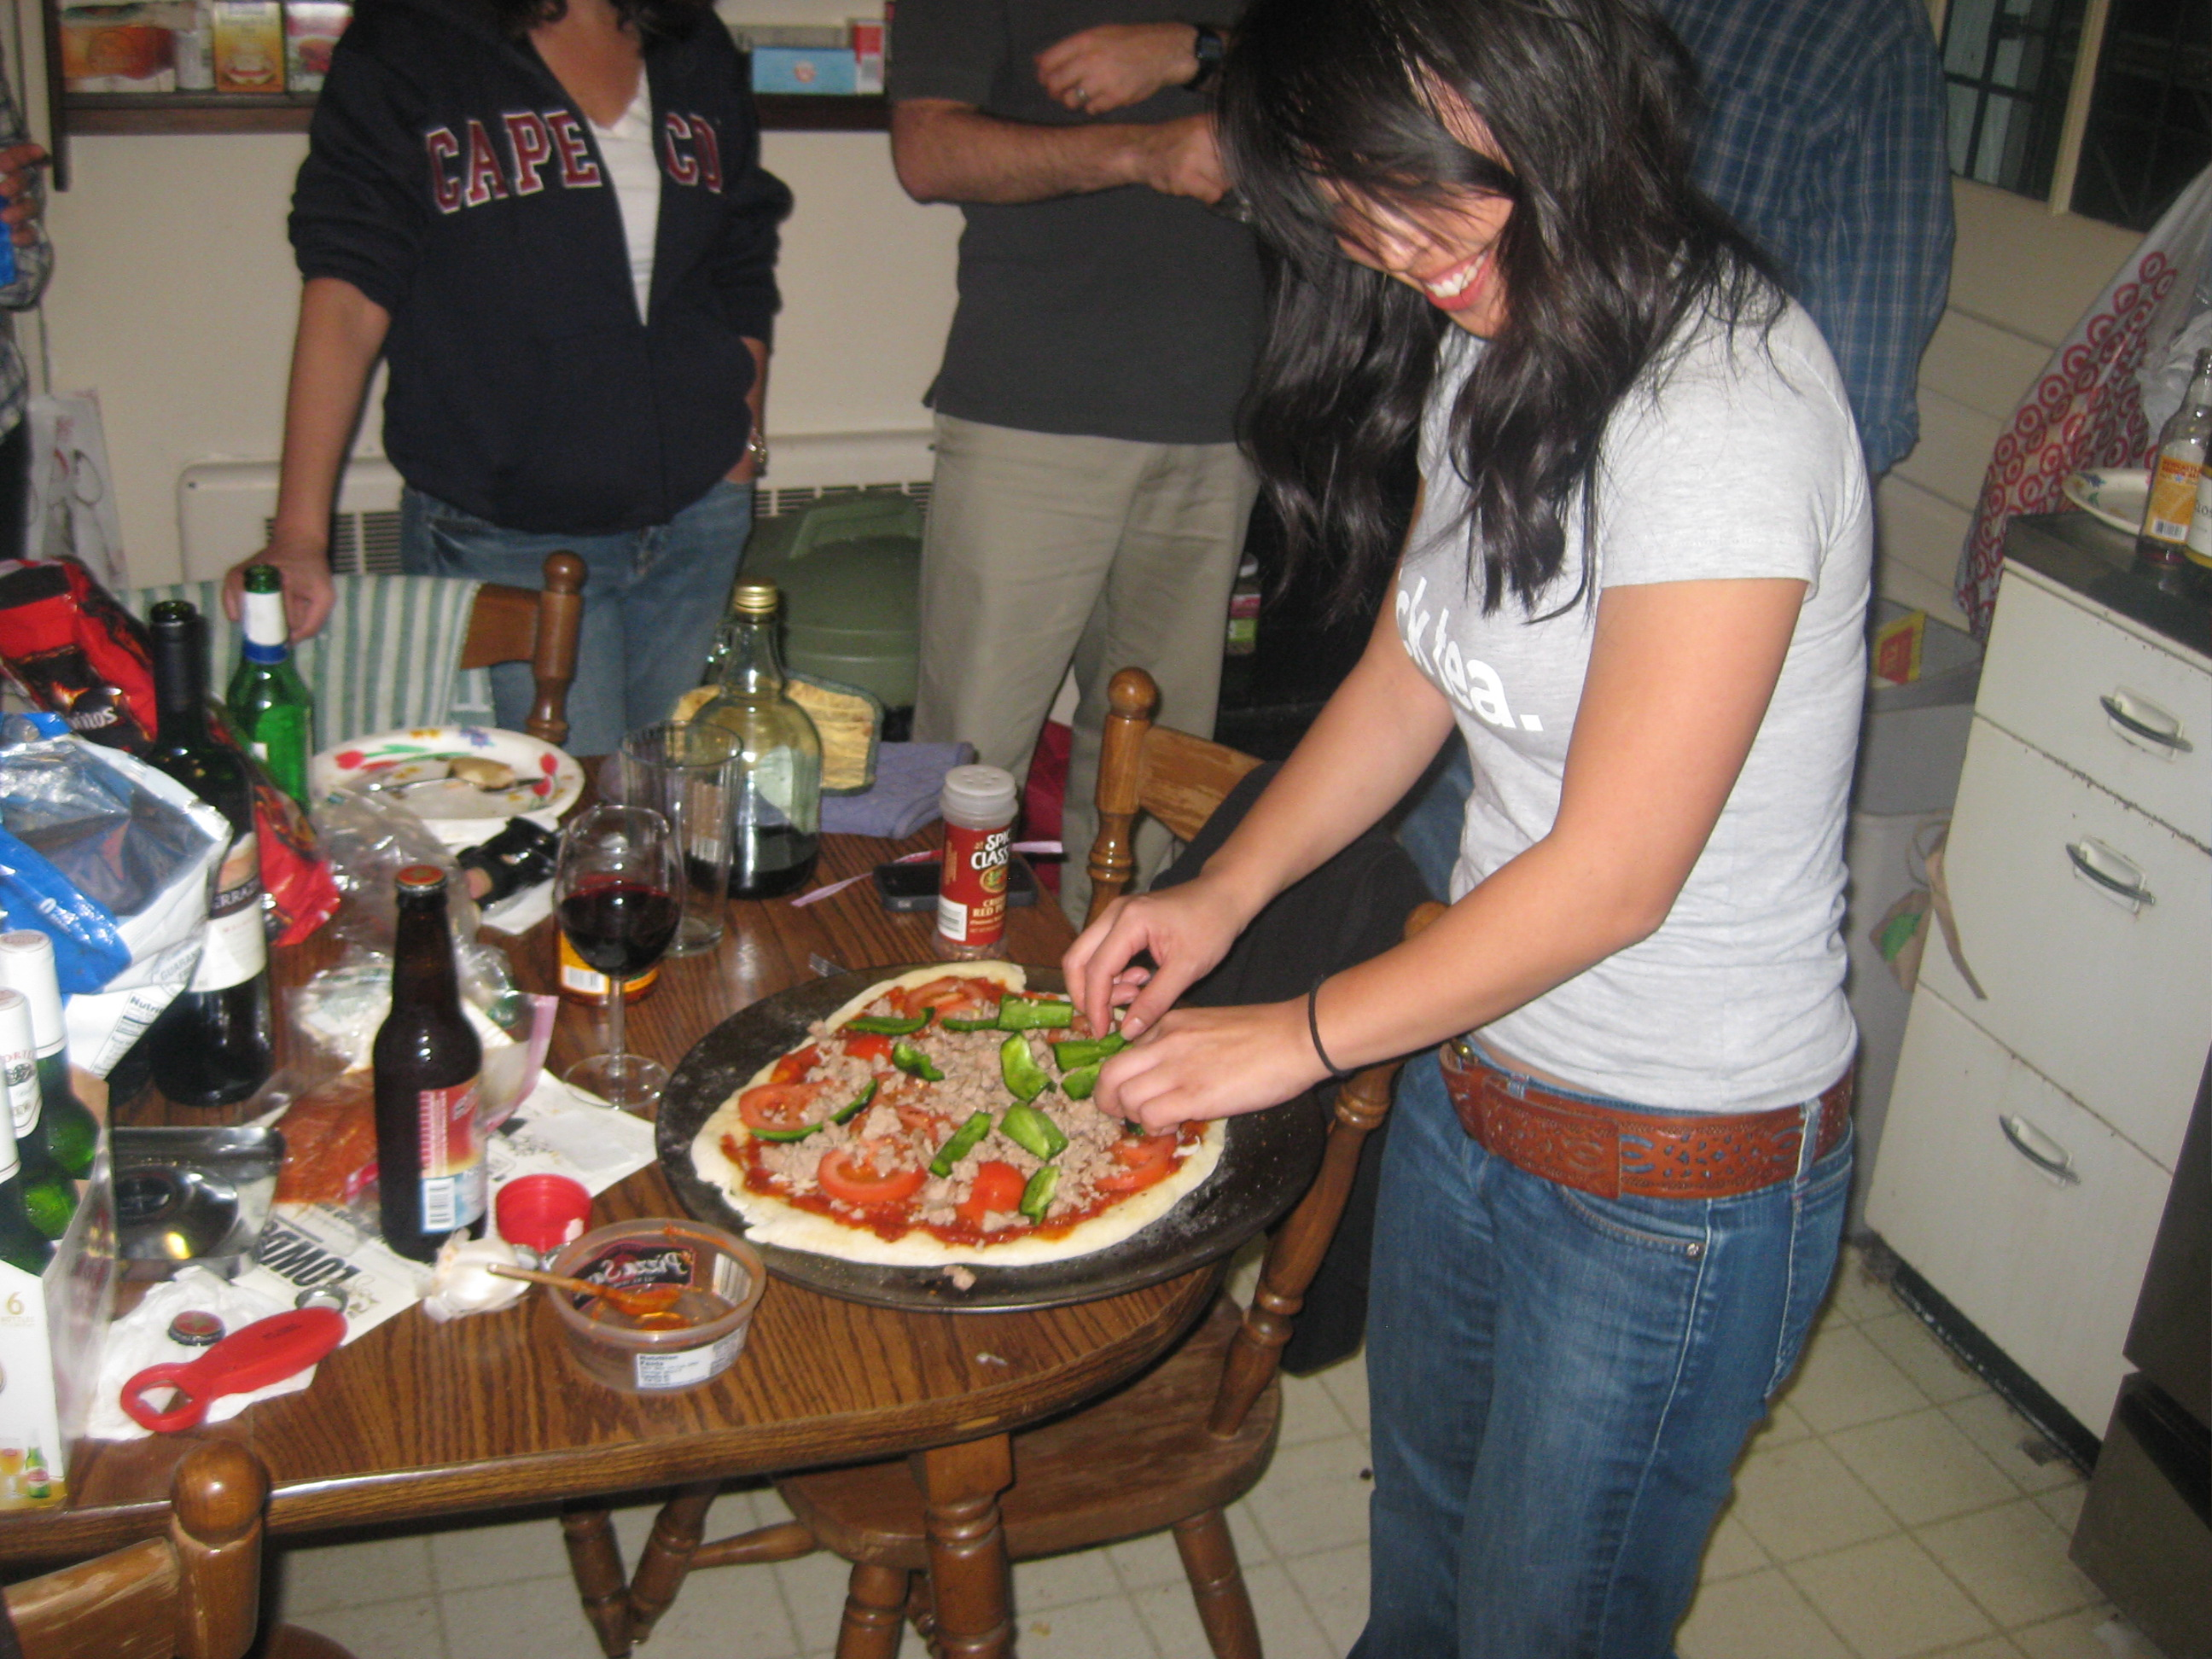 Sharon and pizza